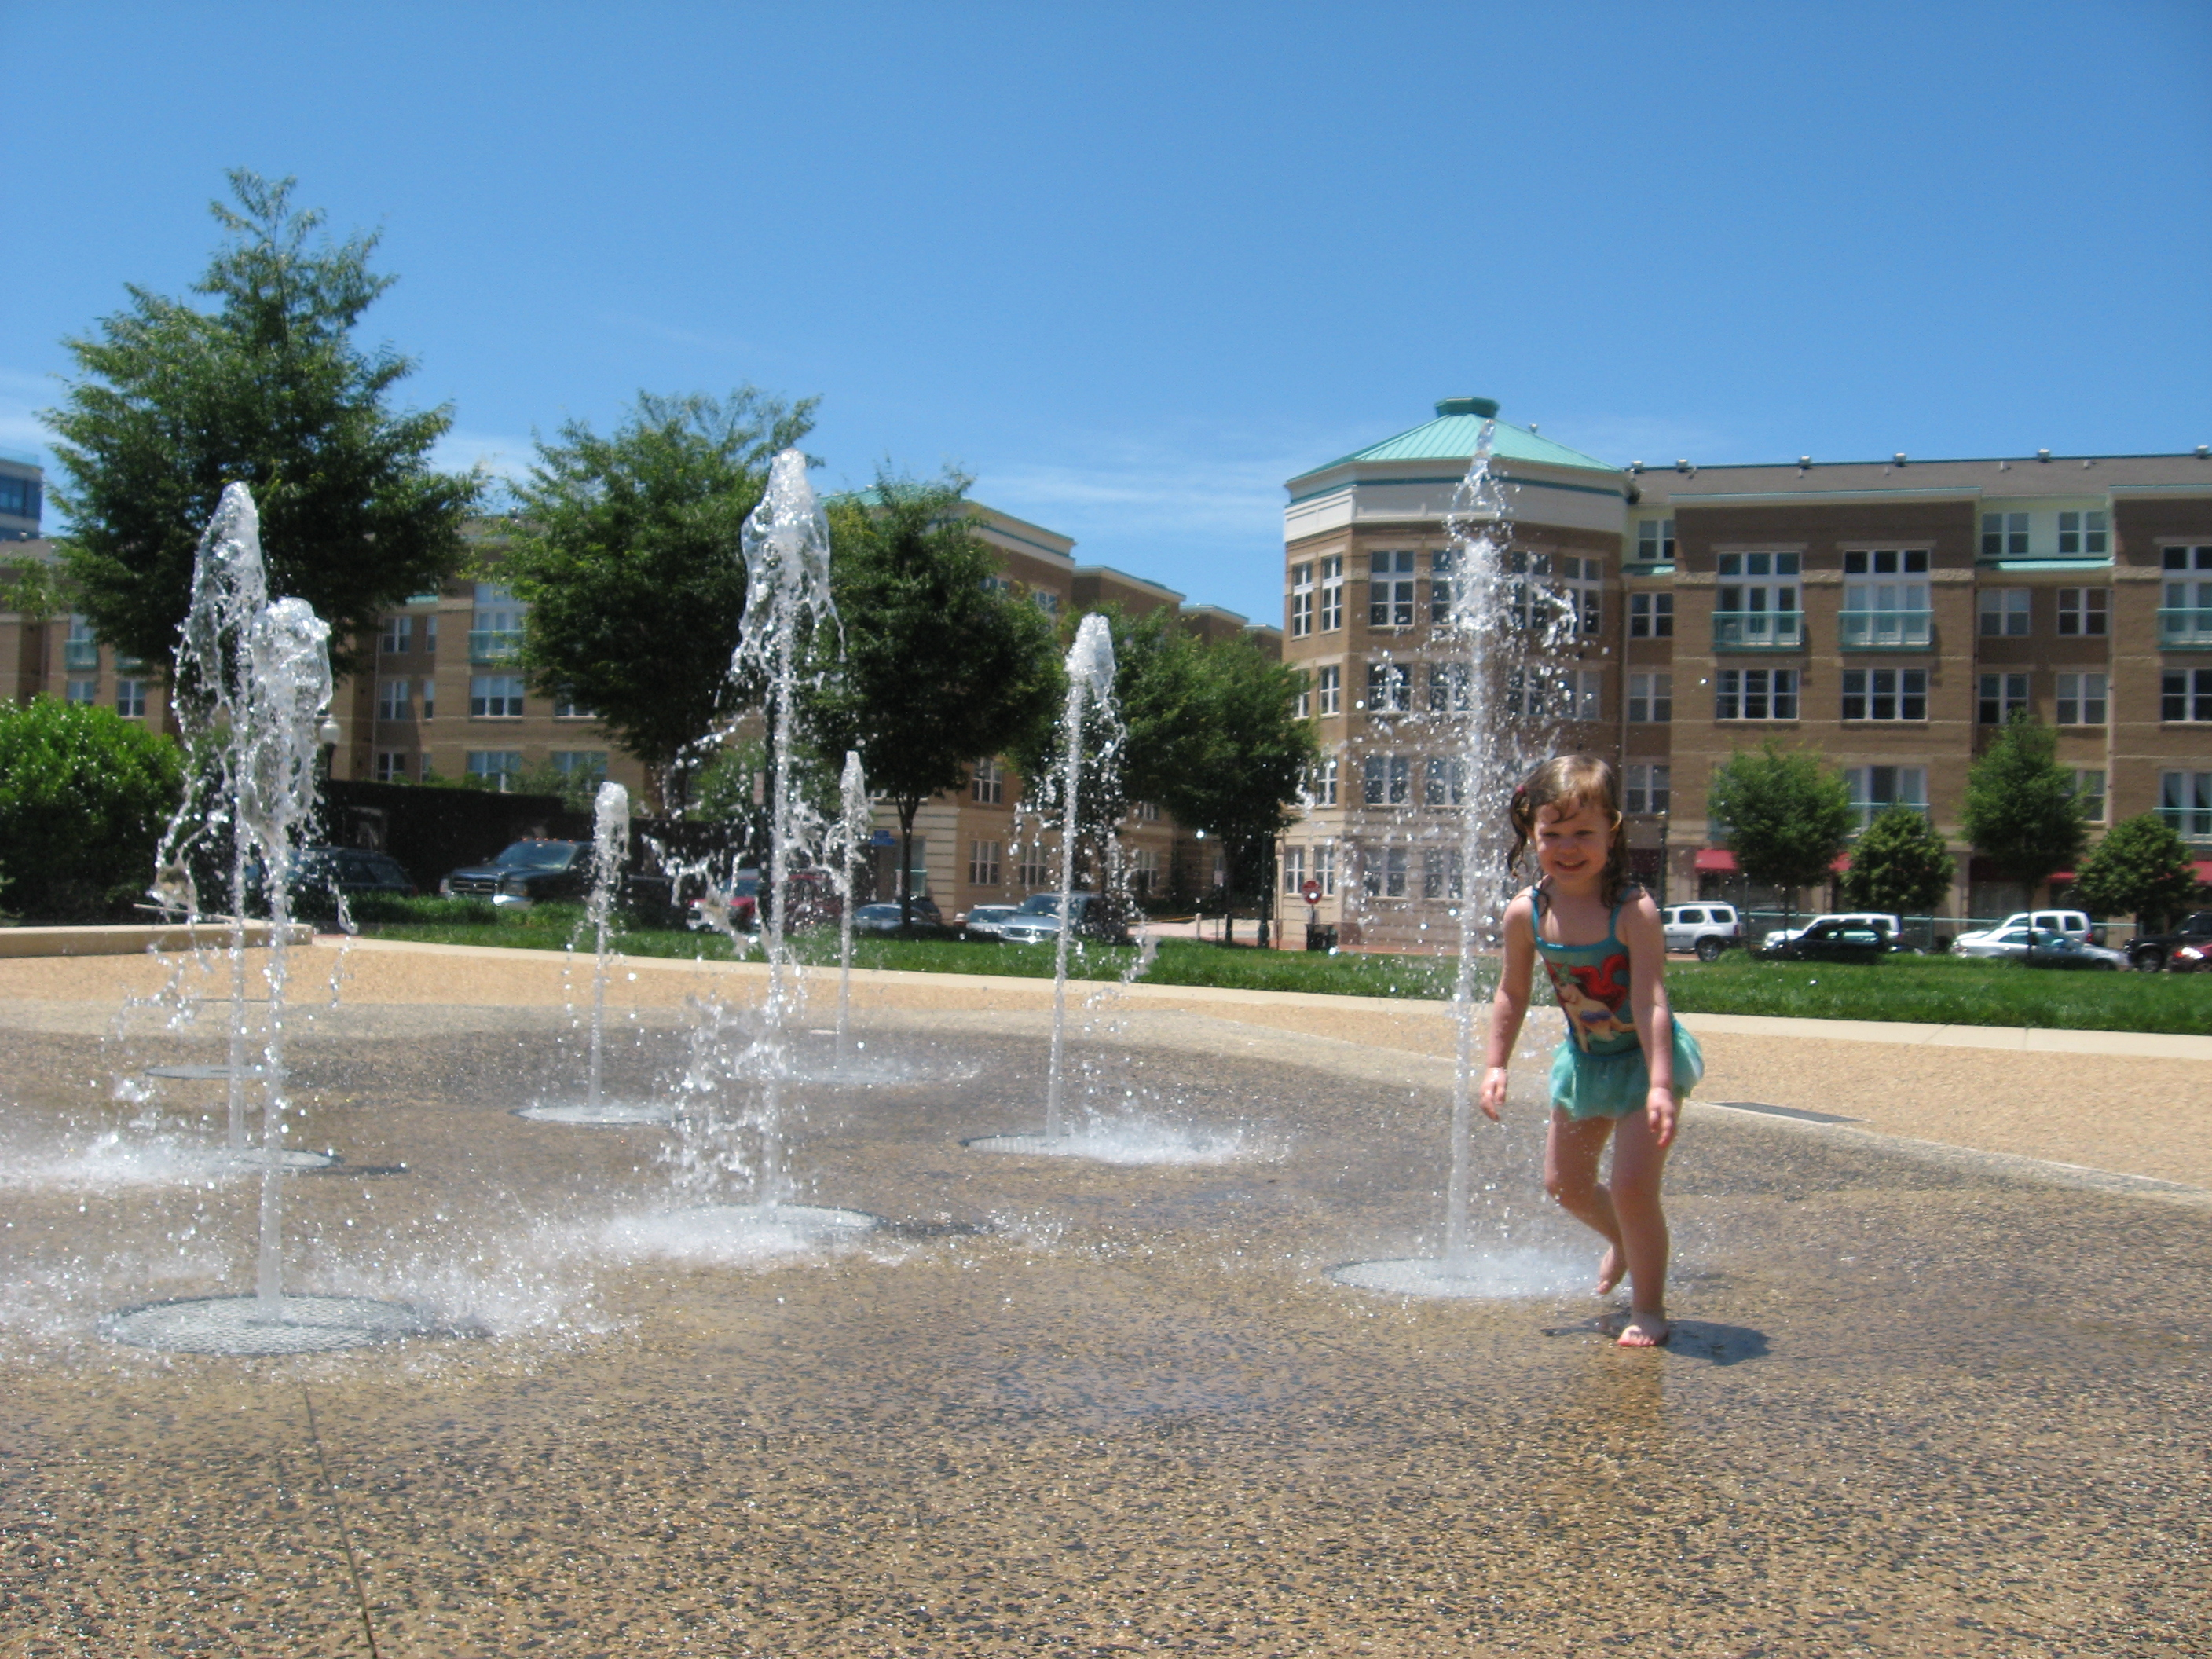 Amelia Plays in the Reston Fountains